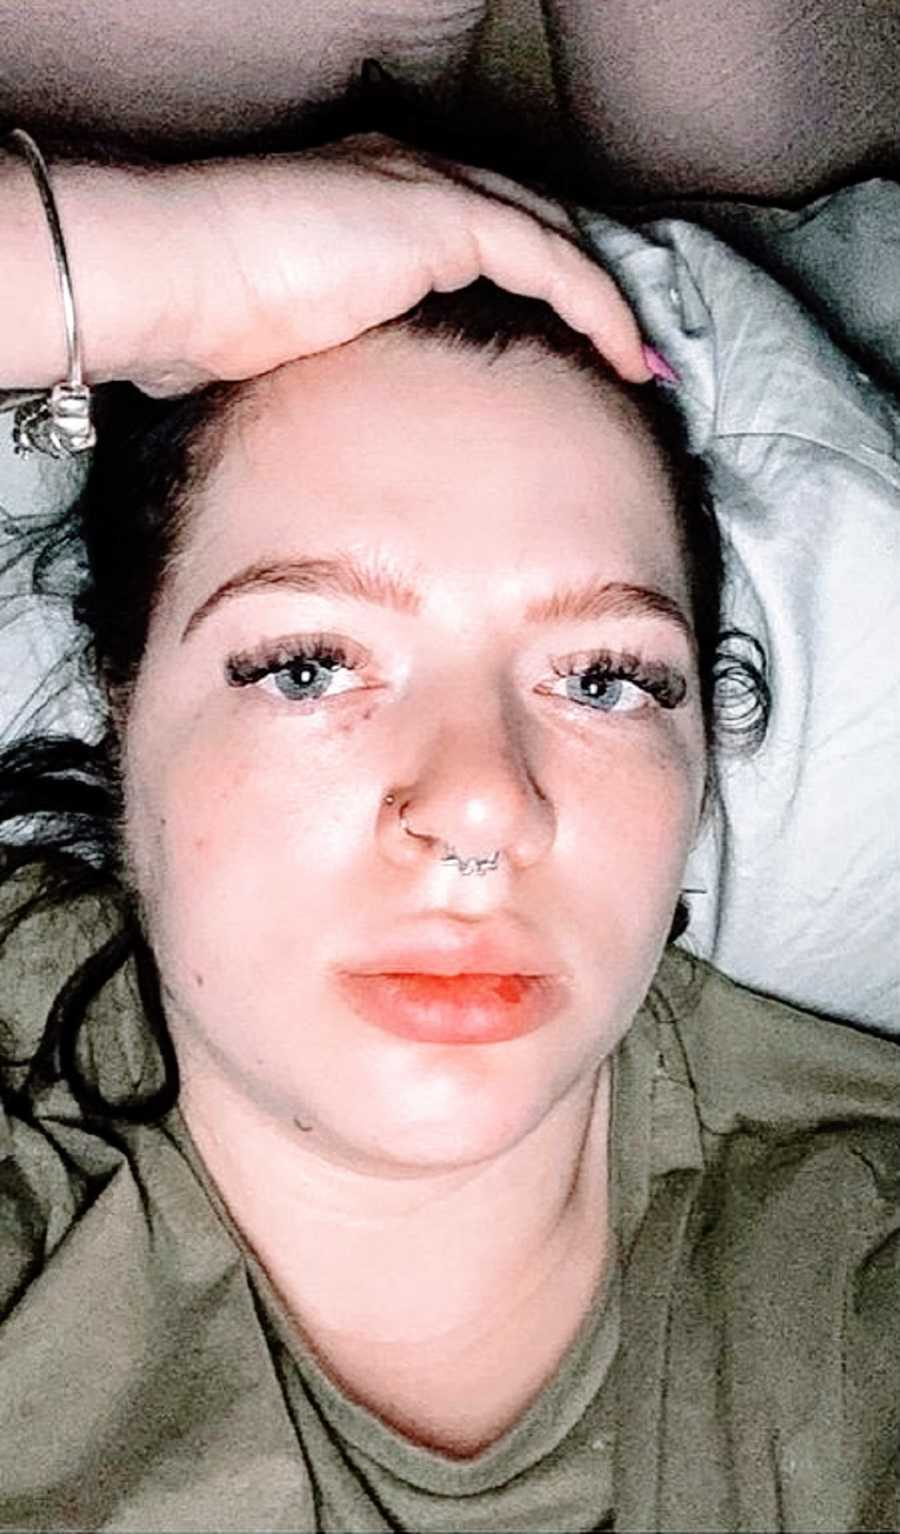 A woman with nose piercings lies uncomfortably in bed